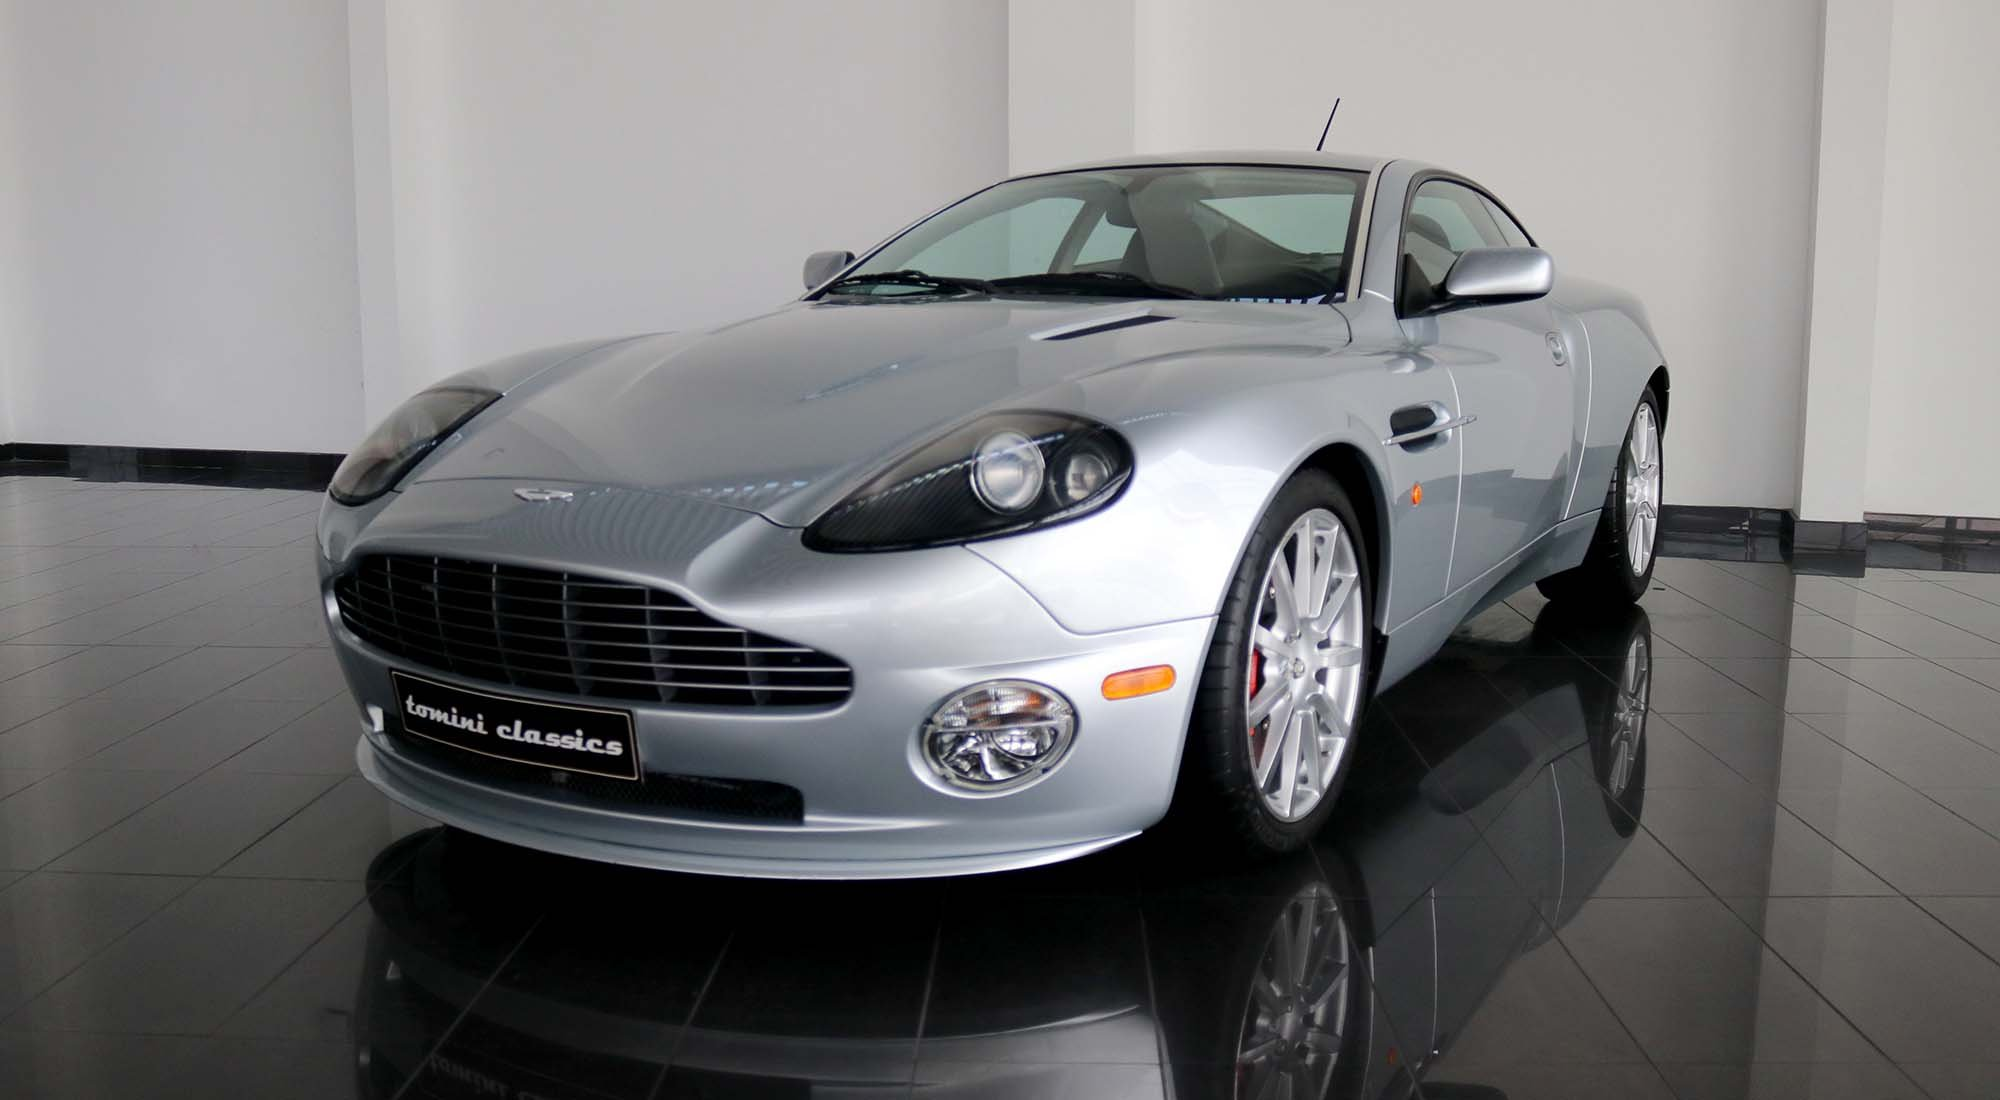 Aston Martin Vanquish S (2006) For Sale (picture 2 of 6)